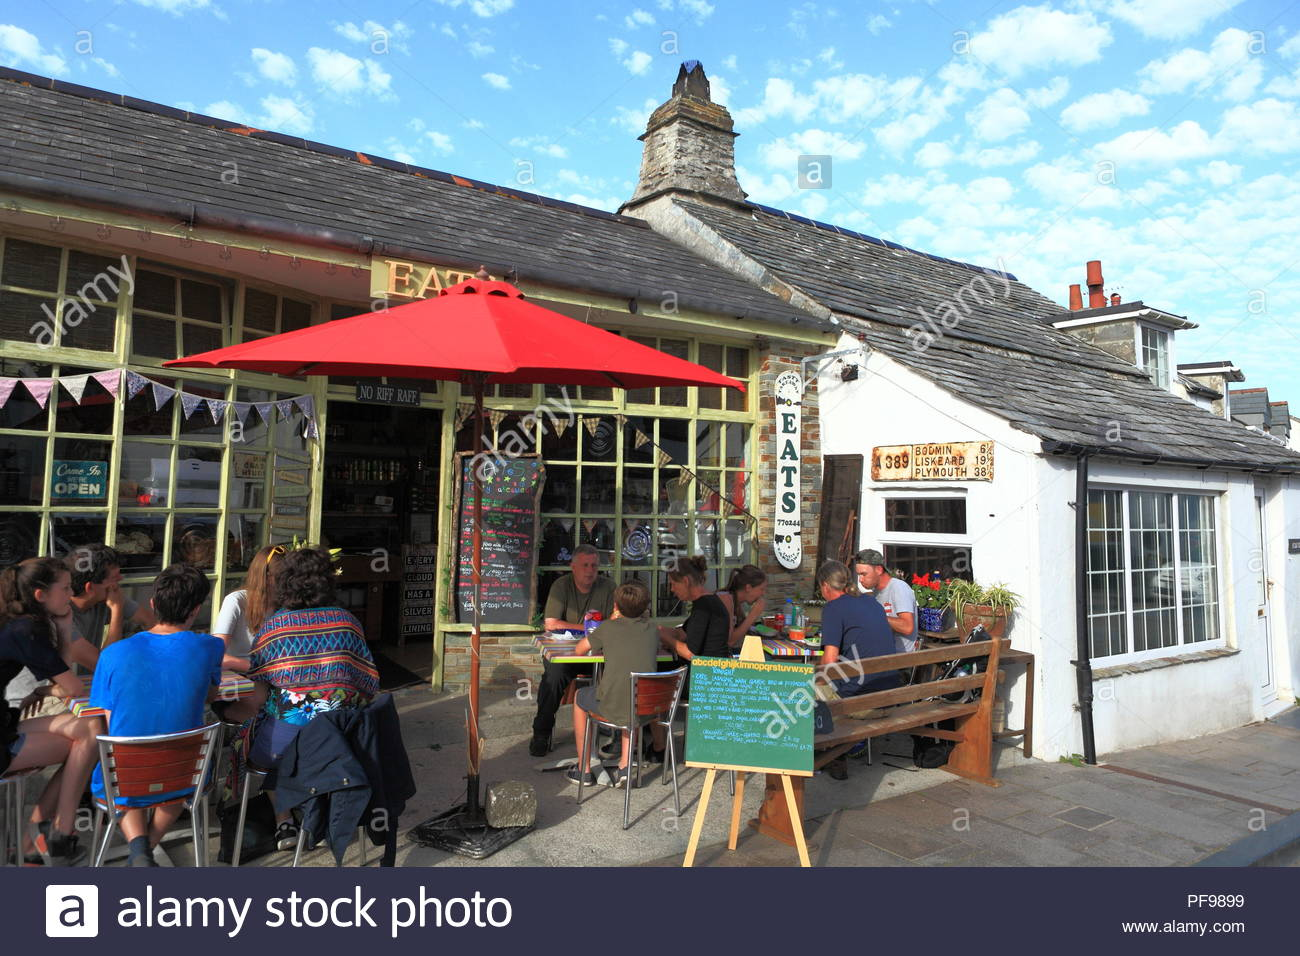 """Early Evening Alfresco Dining at the """"Eats"""" restaurant during holiday season at Tintagel, North Cornwall UK. Summer August 2018 Stock Photo"""